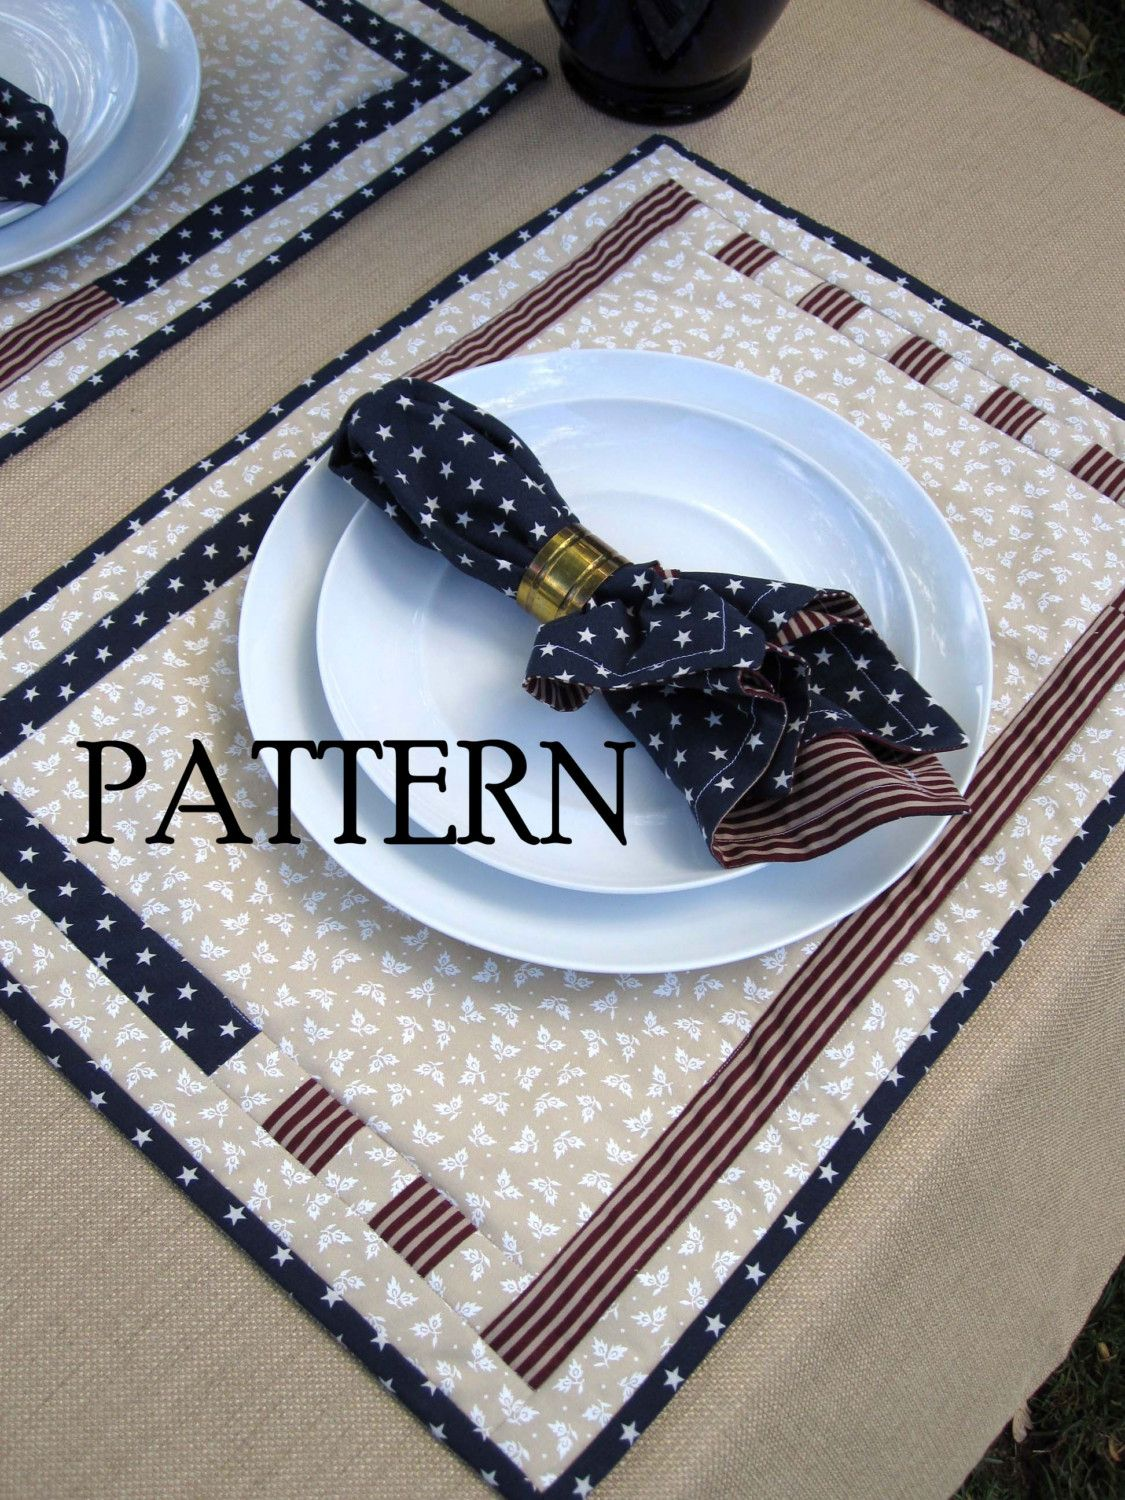 Image detail for -PDF Pattern American Flag Quilted Placemats by QuietudeQuilts